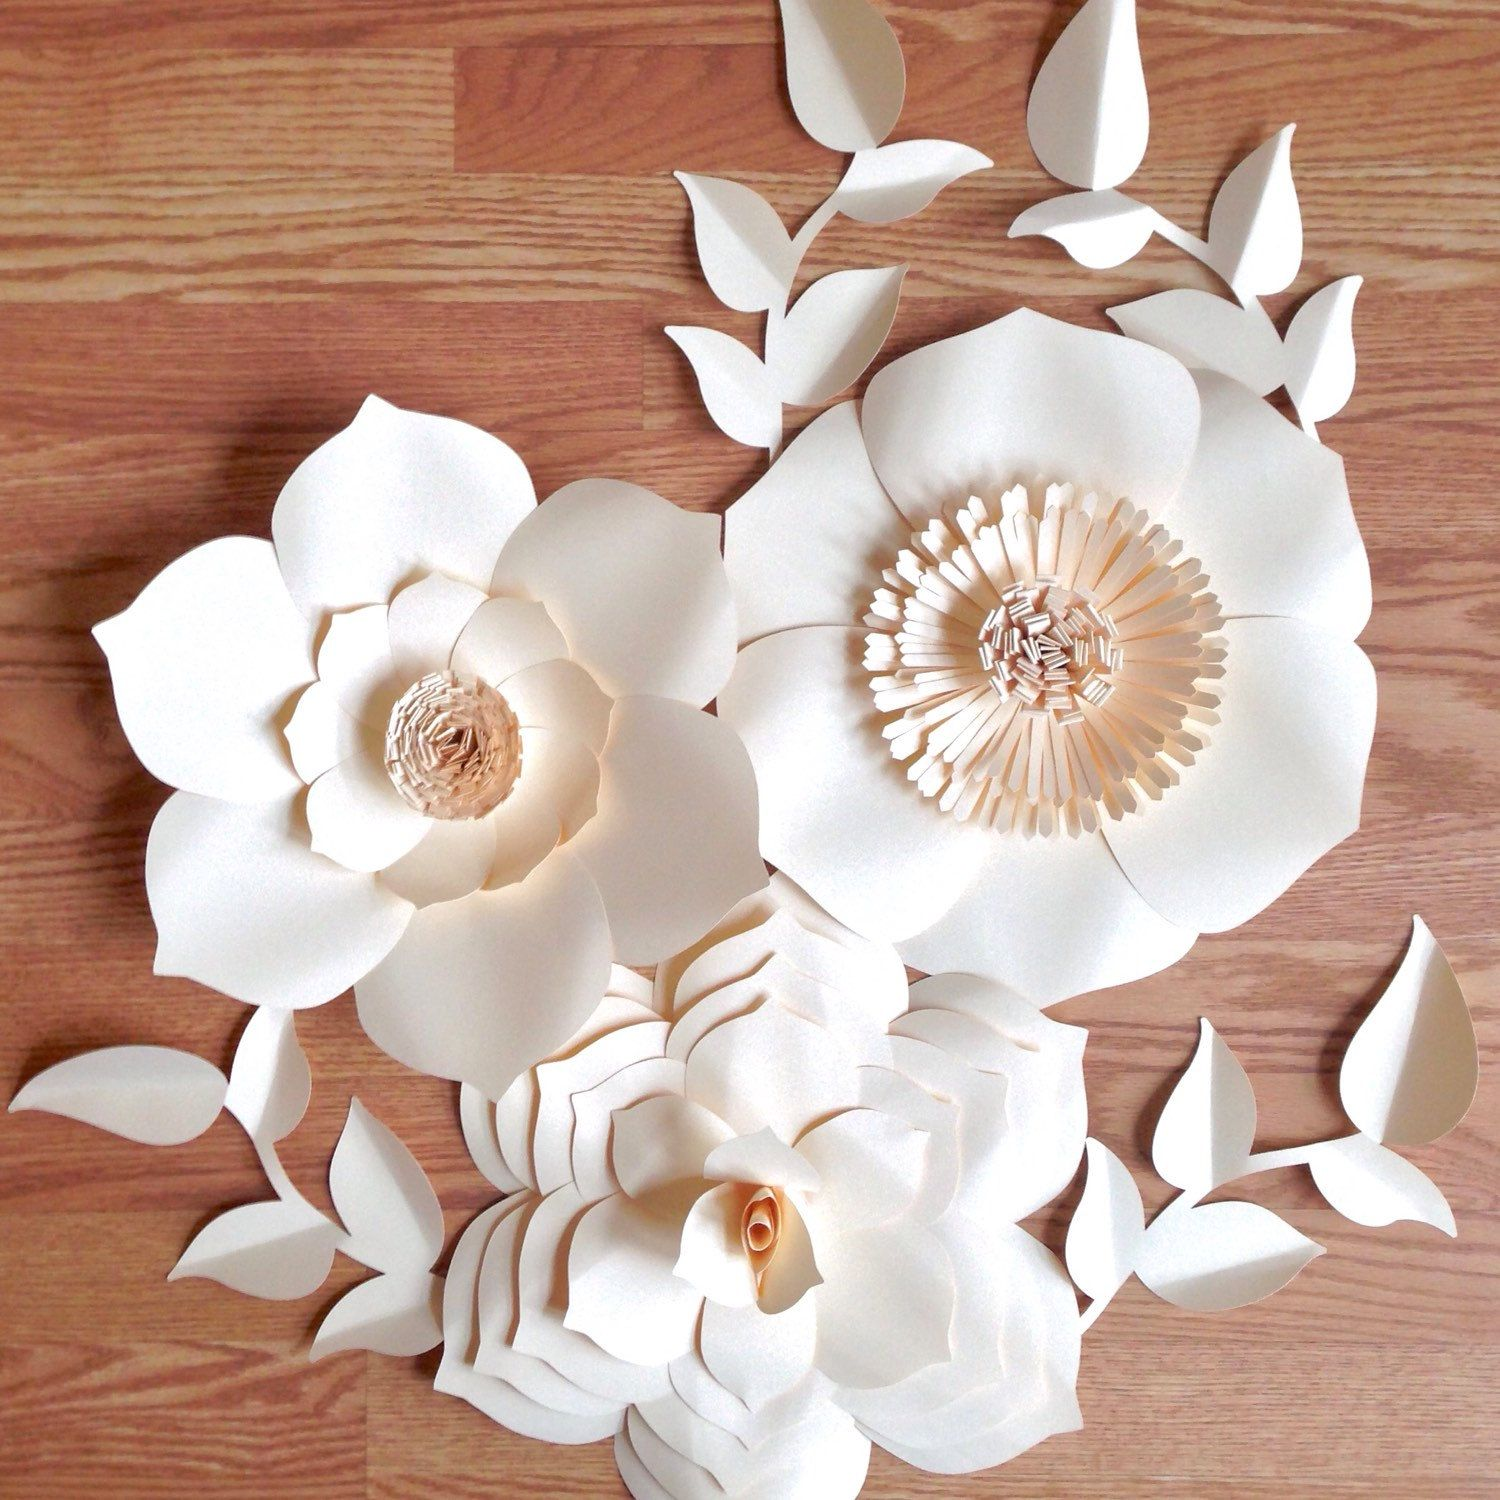 Paper Flower Backdrop, Giant Paper Flowers, Wedding